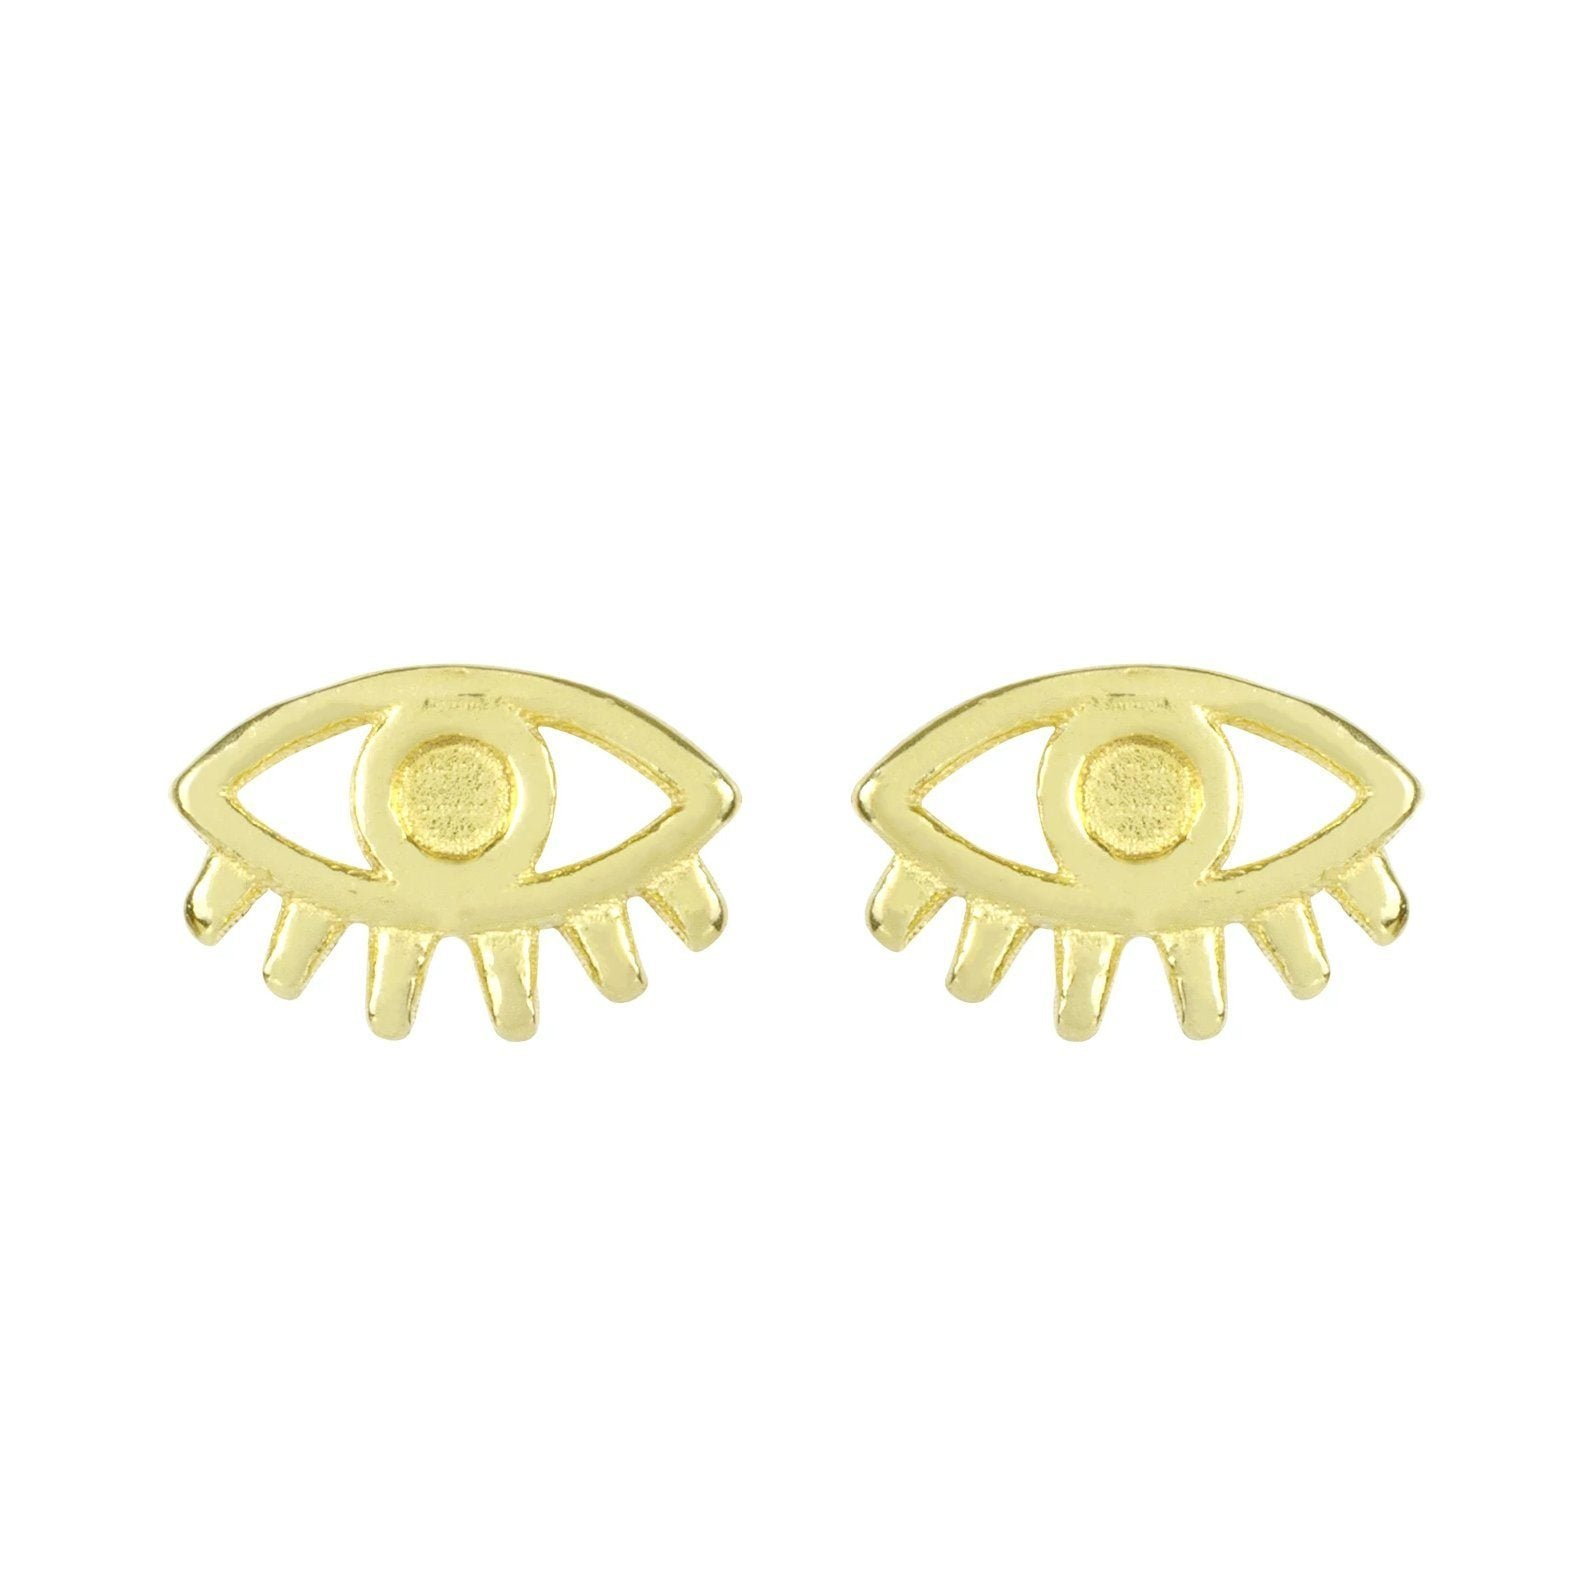 Good vibes. Lucky charm. Protector of evil spirits. No matter which way you put it, the Evil Eye Stud Earrings are a good omen and carries only well wishes along with it.